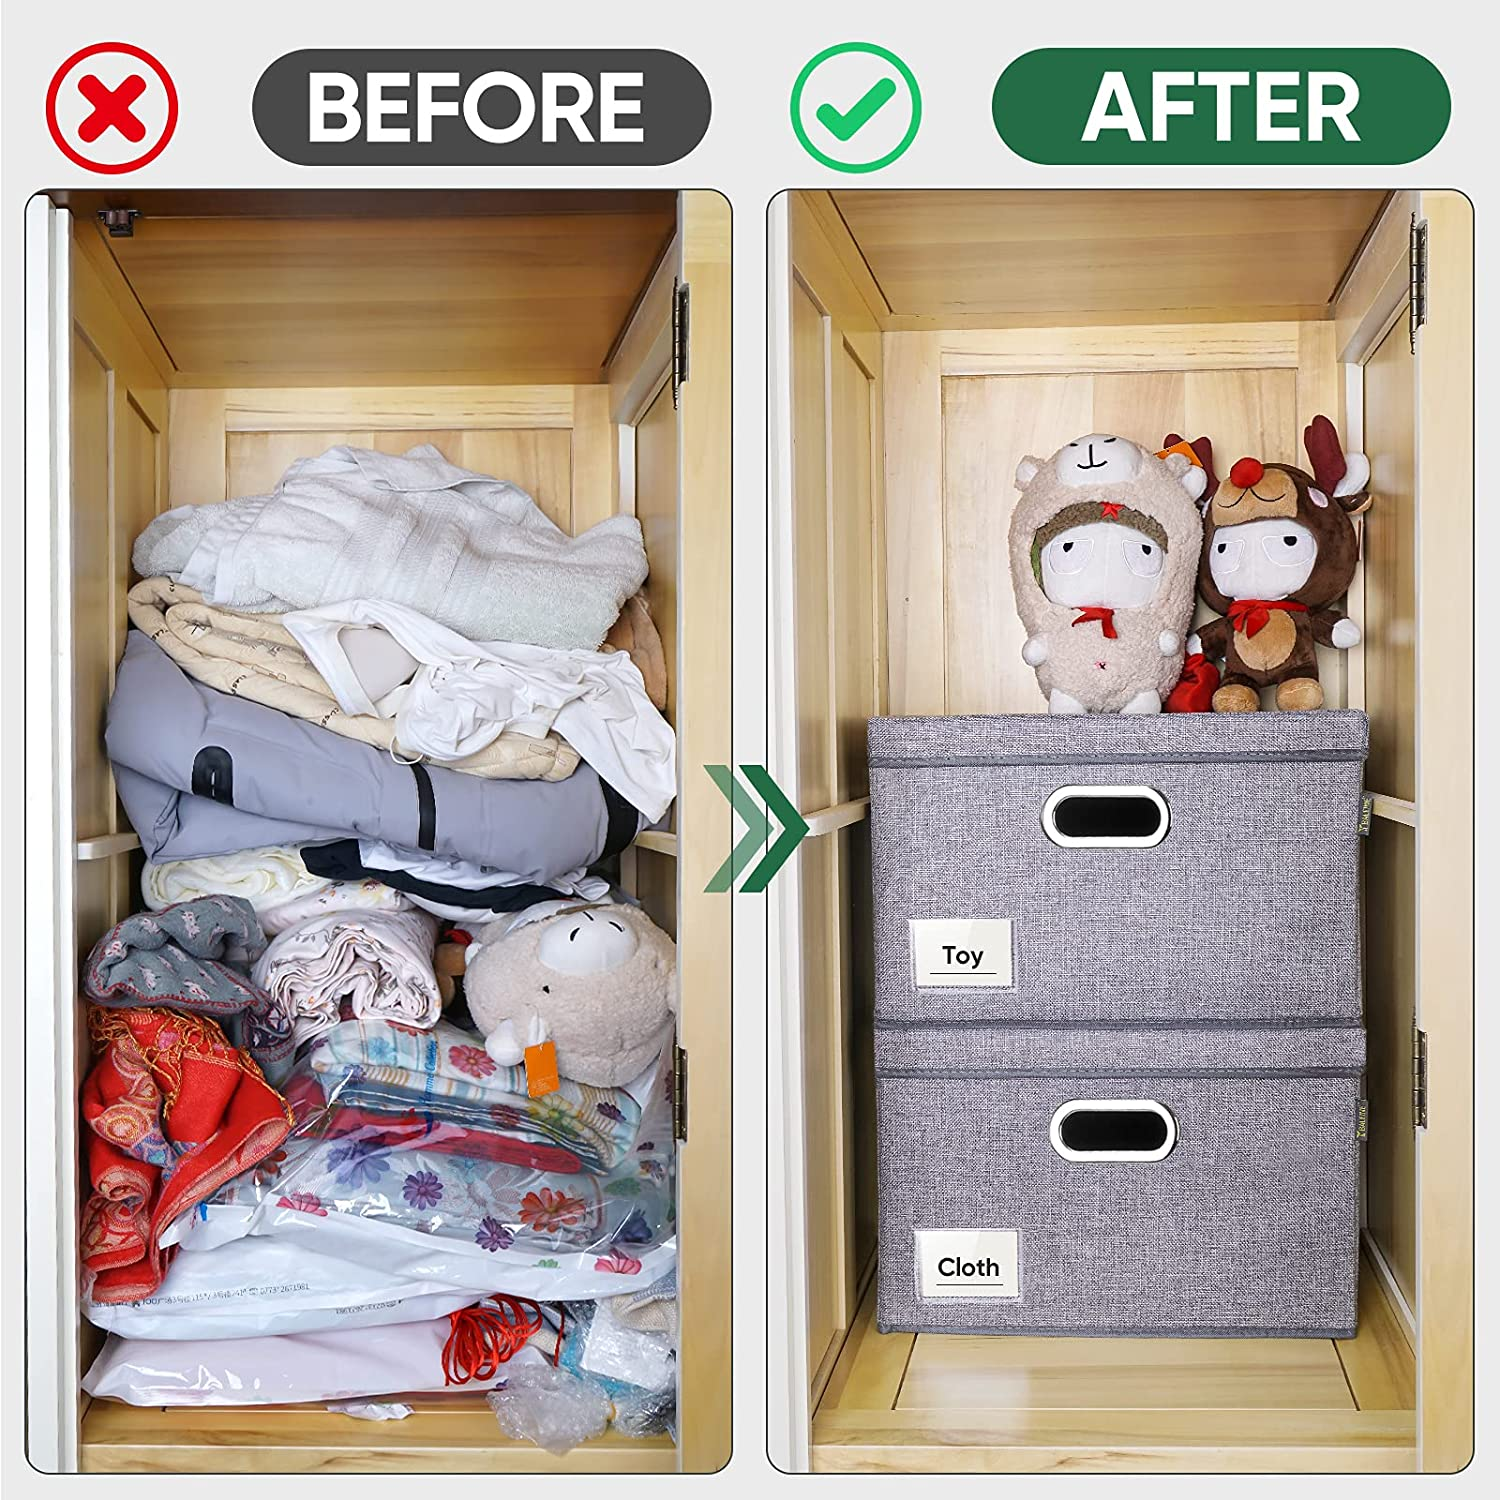 BALEINE Storage Bins with Lids, Foldable Linen Fabric Storage Boxes with  Lids, Collapsible Closet Organizer Containers with Cover for Home Bedroom  ...